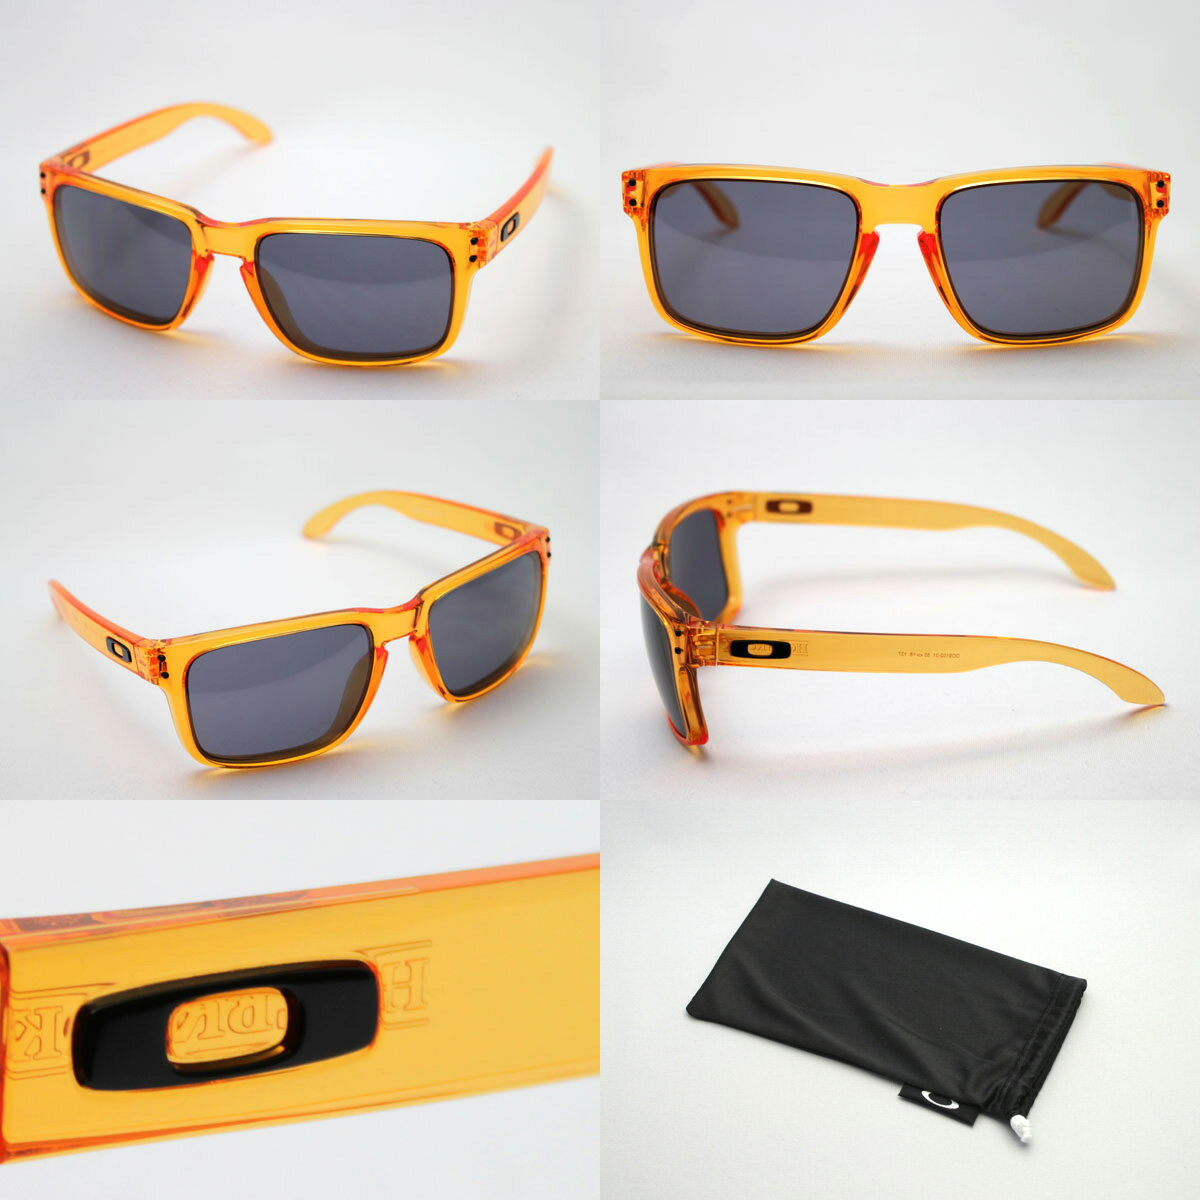 5baa21743a Oakley Prescription Sunglasses Nz « Heritage Malta